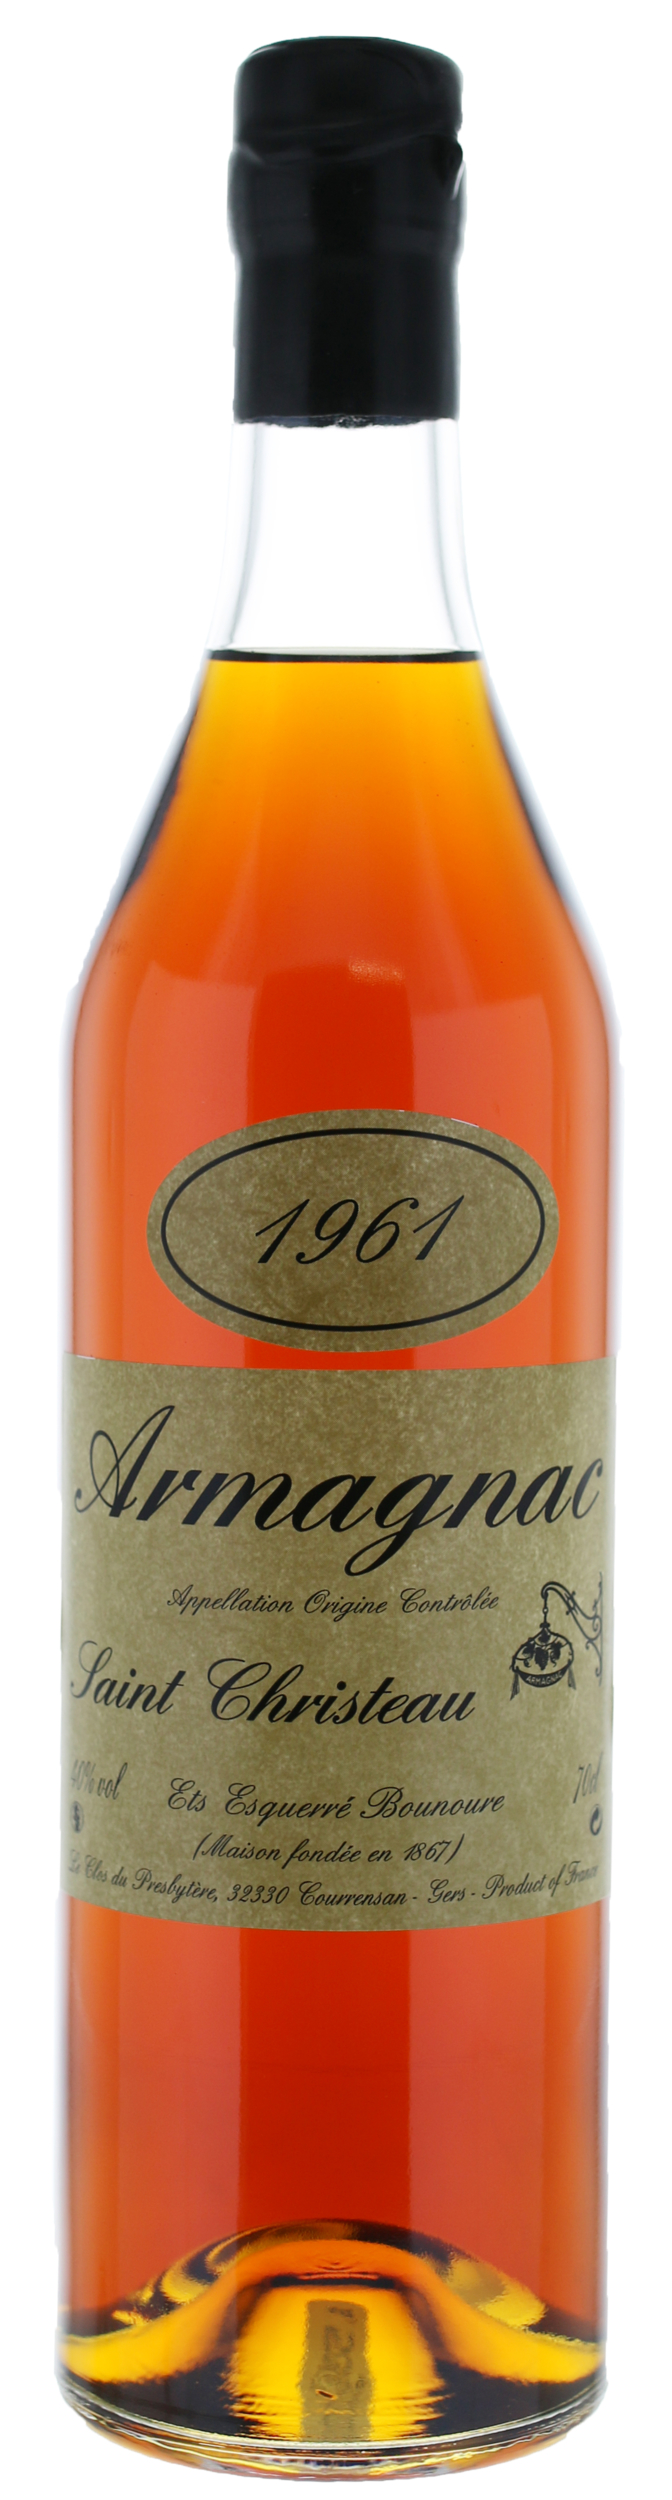 ARMAGNAC - 1961 -Saint-Christeau - 40° - G. Miclo